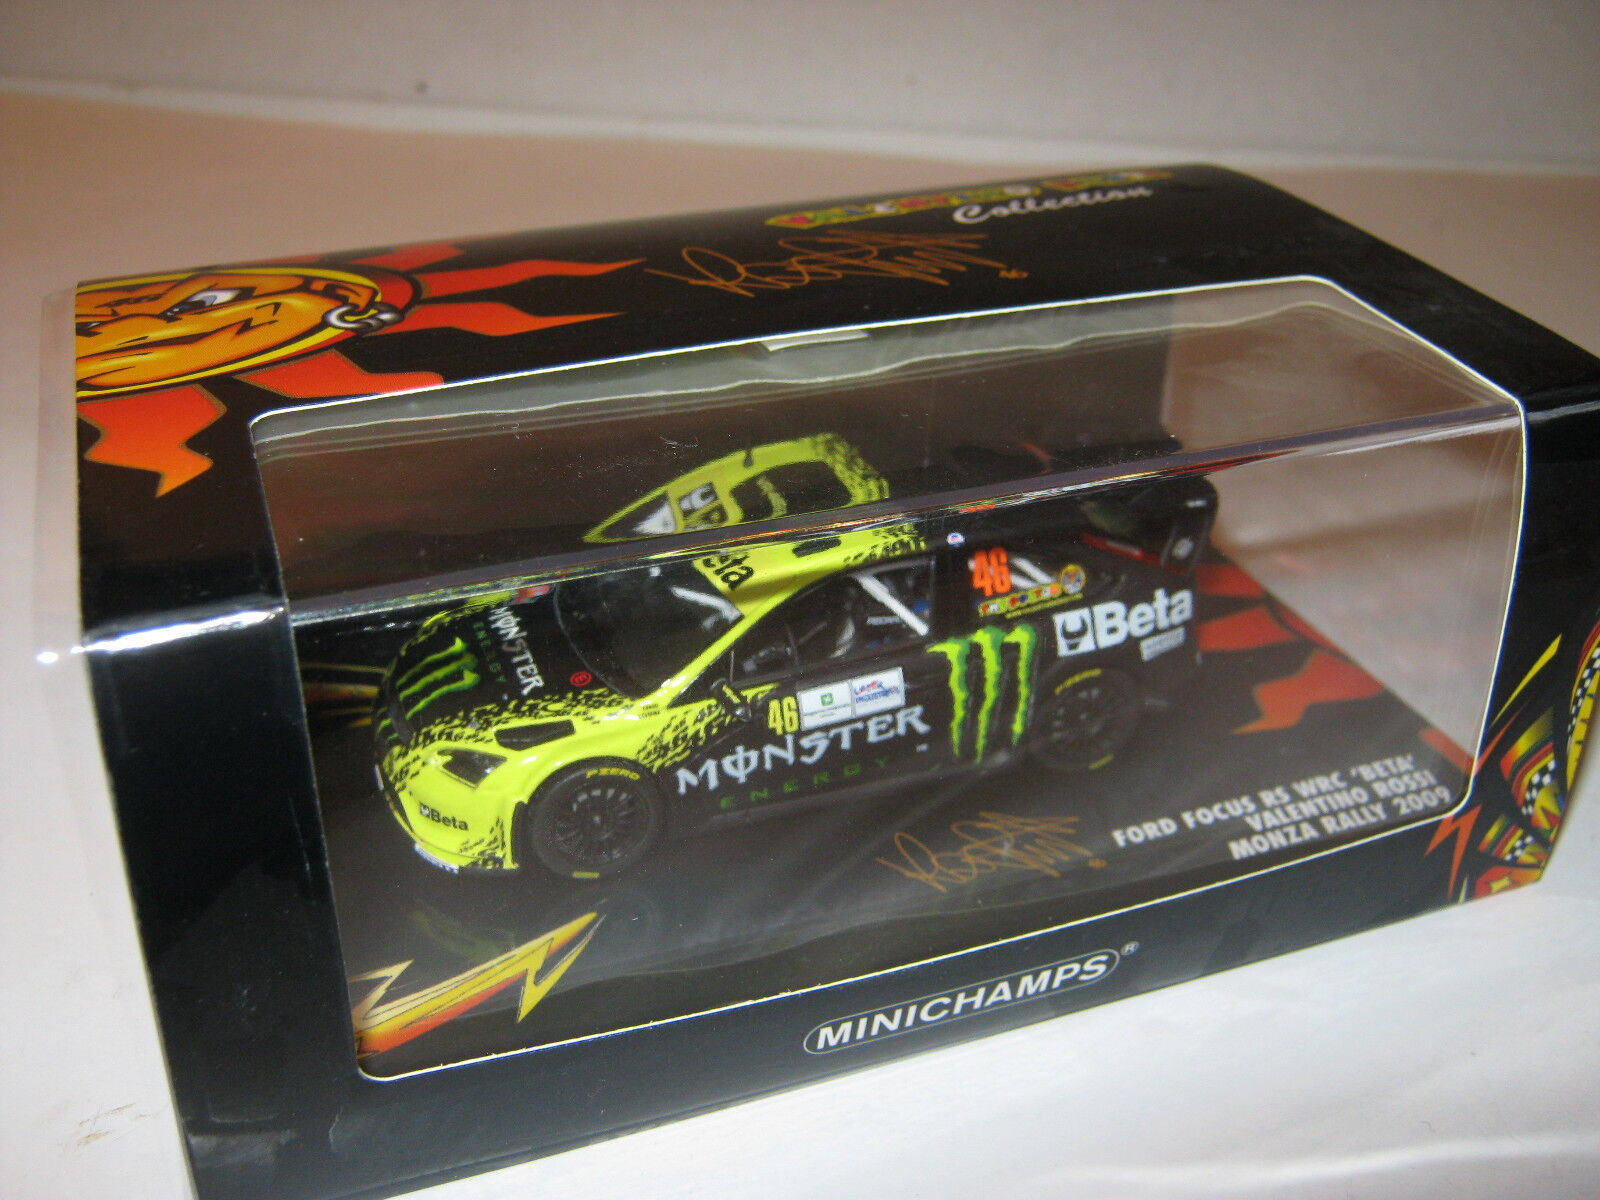 1 43 FORD FOCUS RS WRC V. Rossi Monza Rally 2009 Minichamps le 400098946 NEW